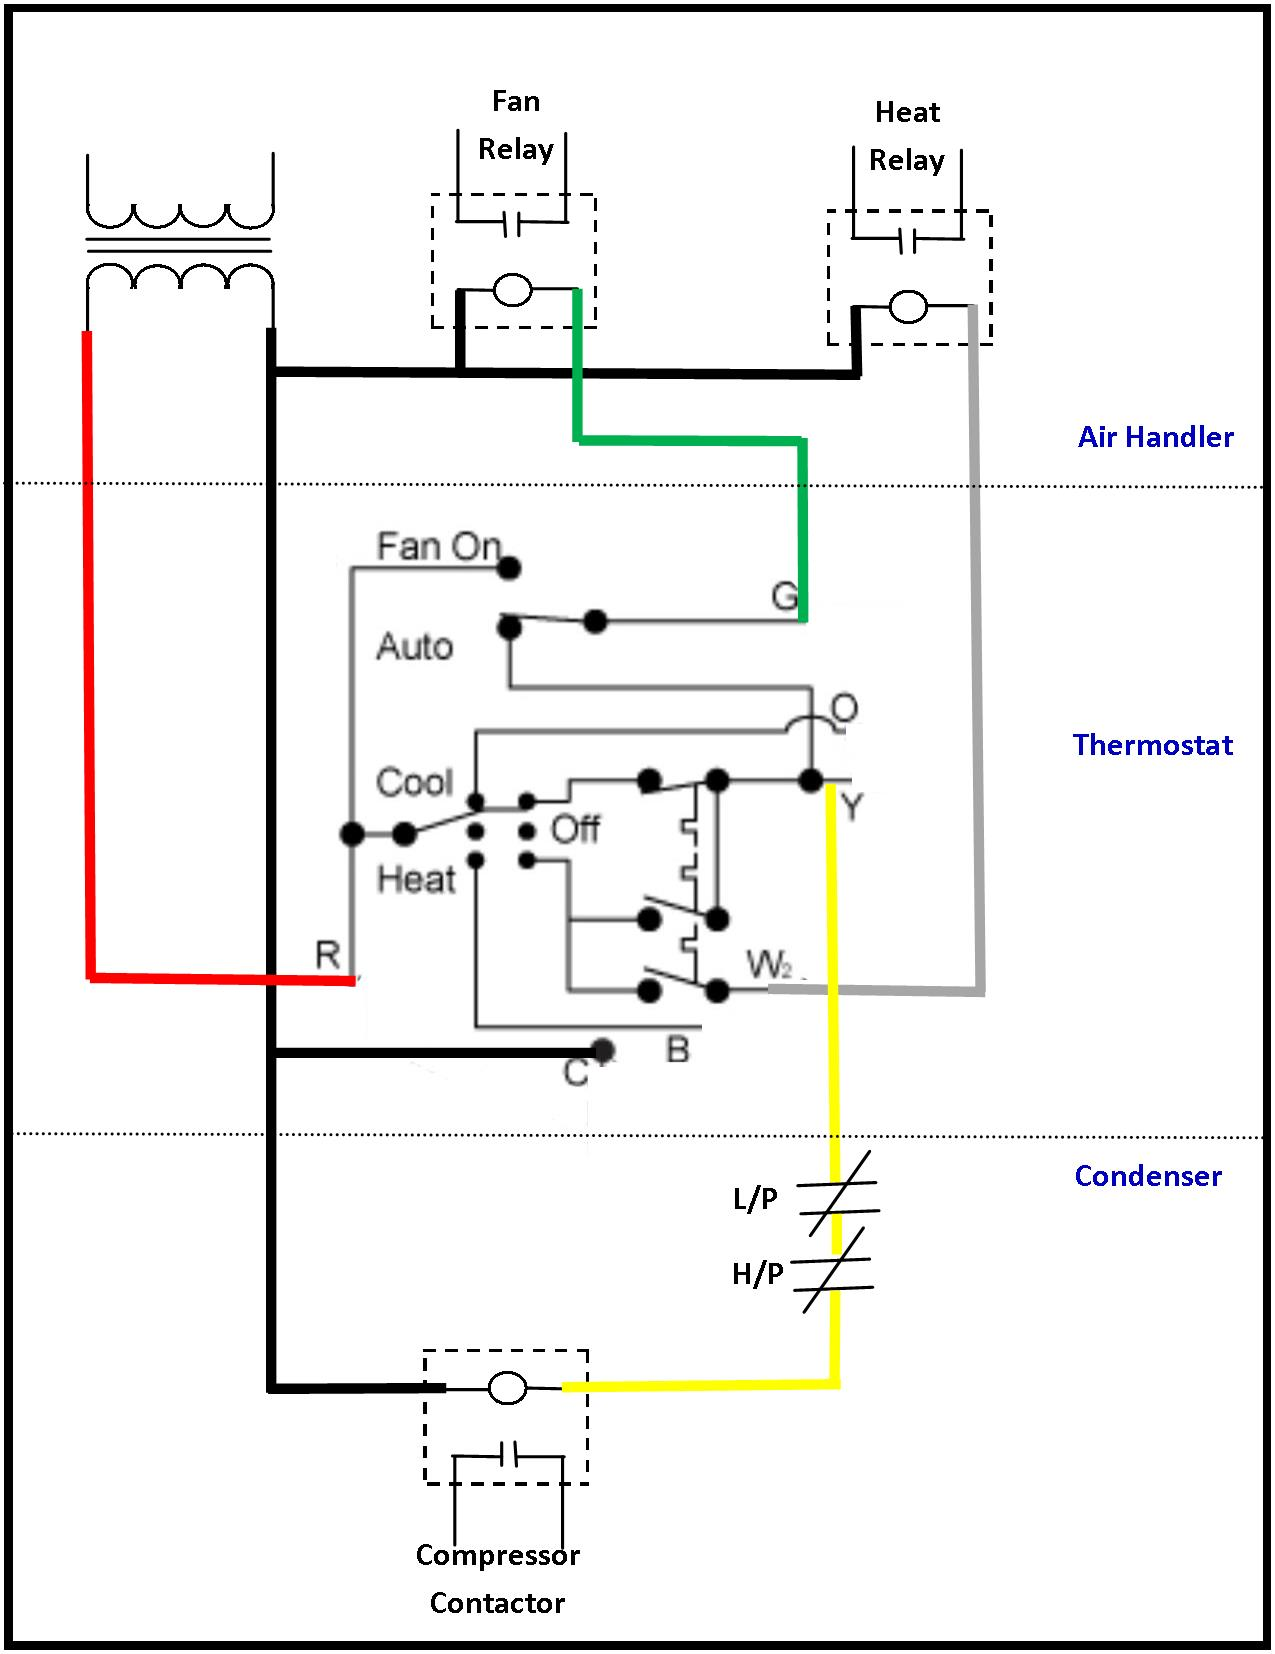 Wiring Diagram besides High Voltage Motor Wiring Diagram. on hvac #C8C803